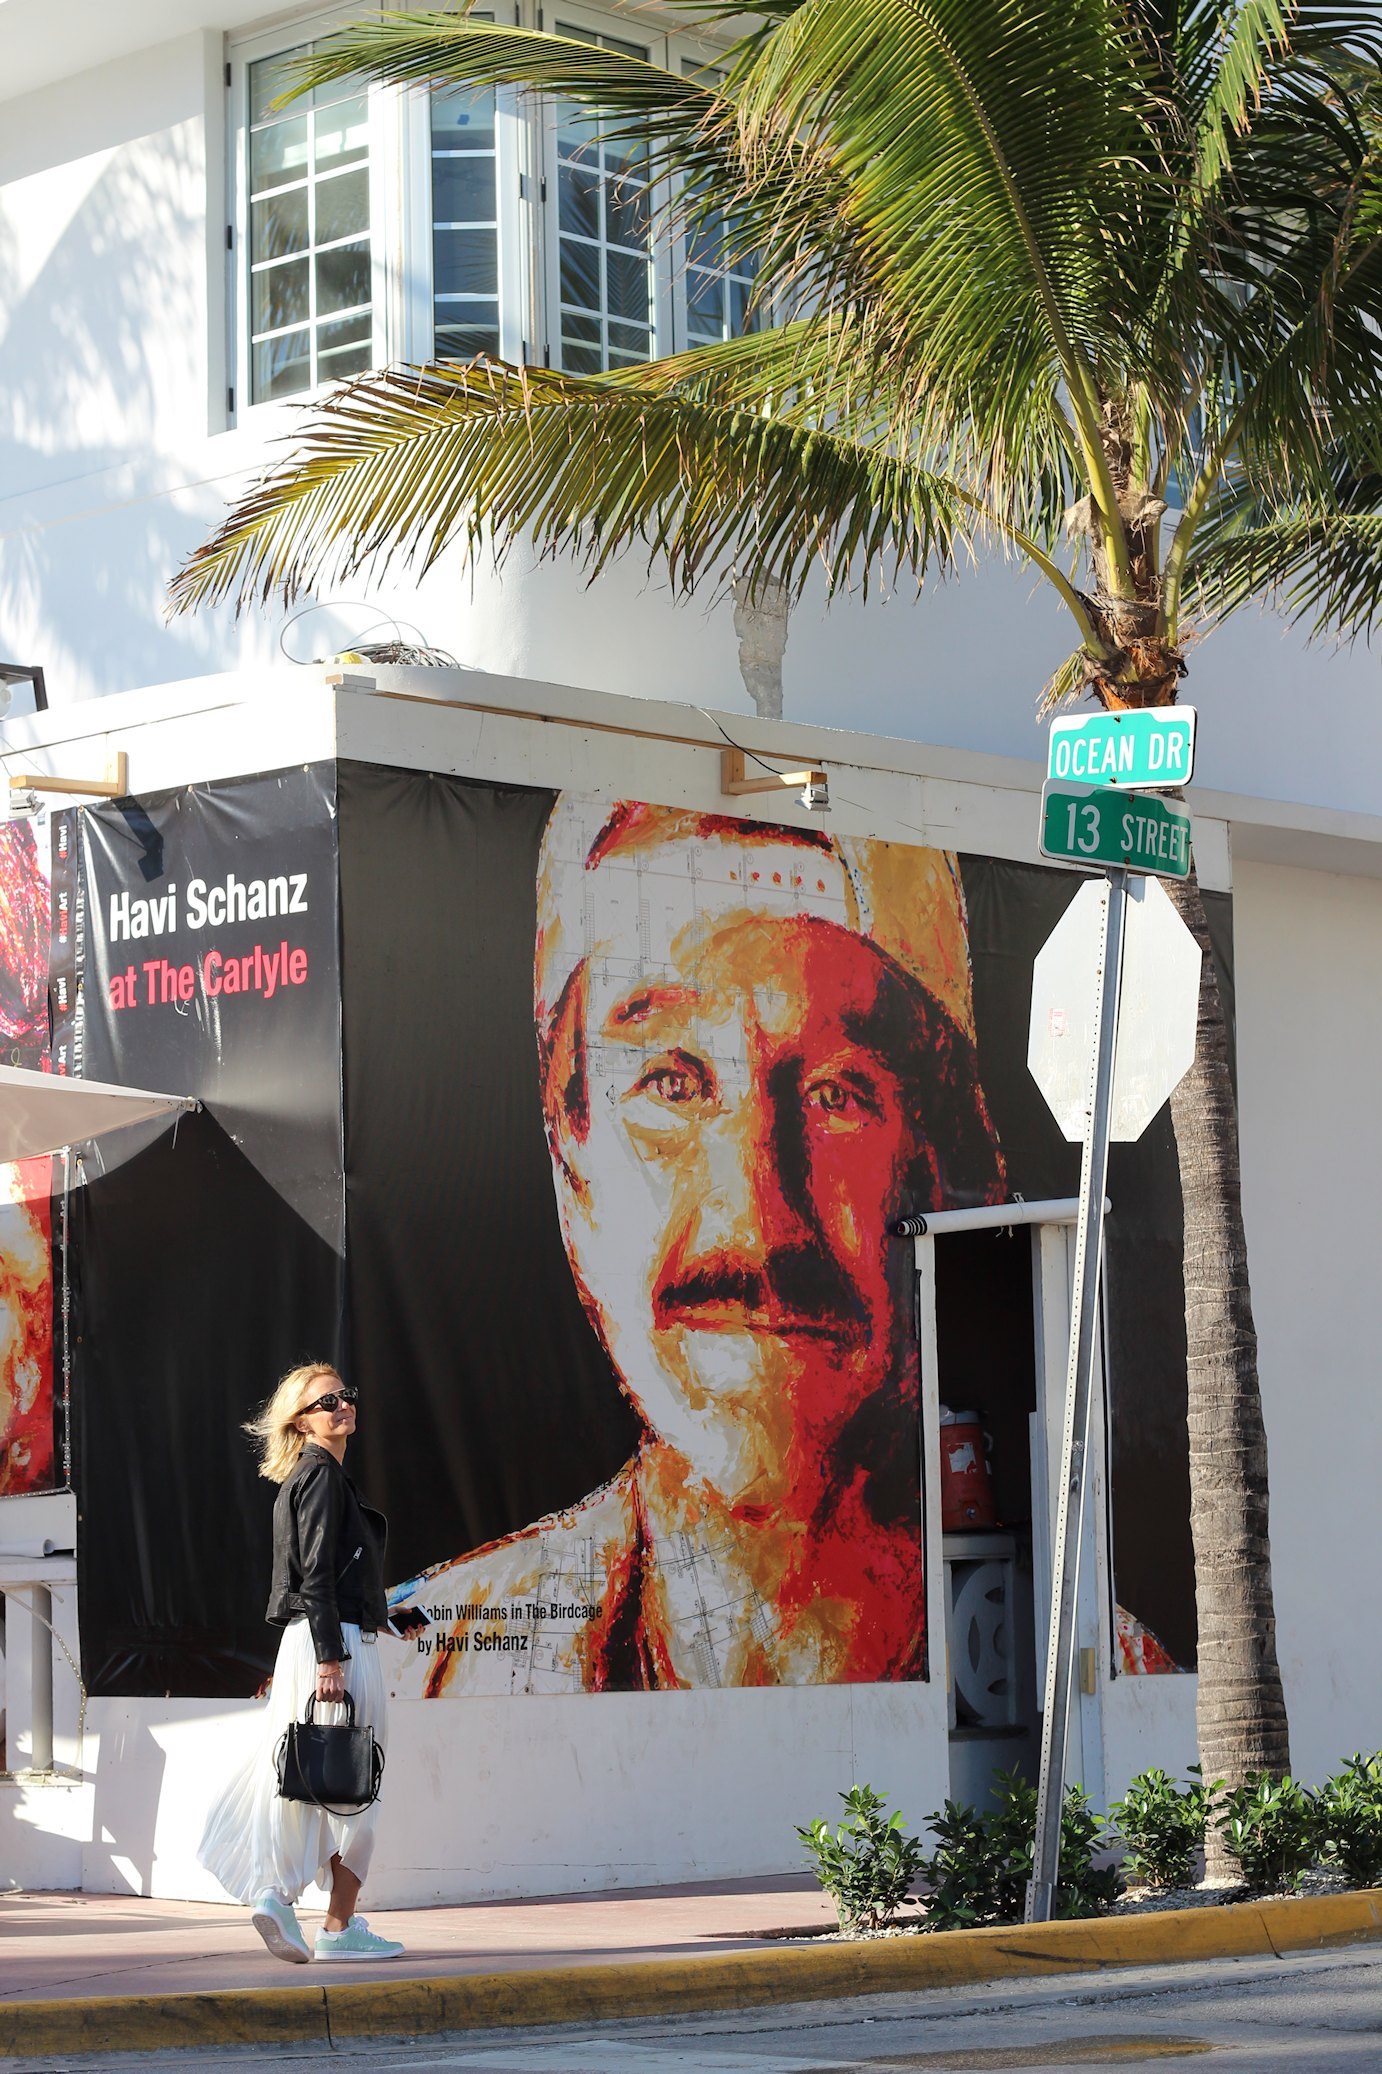 USA, South Beach, Ocean Drive, Carlyle Hotel, Robin Williams